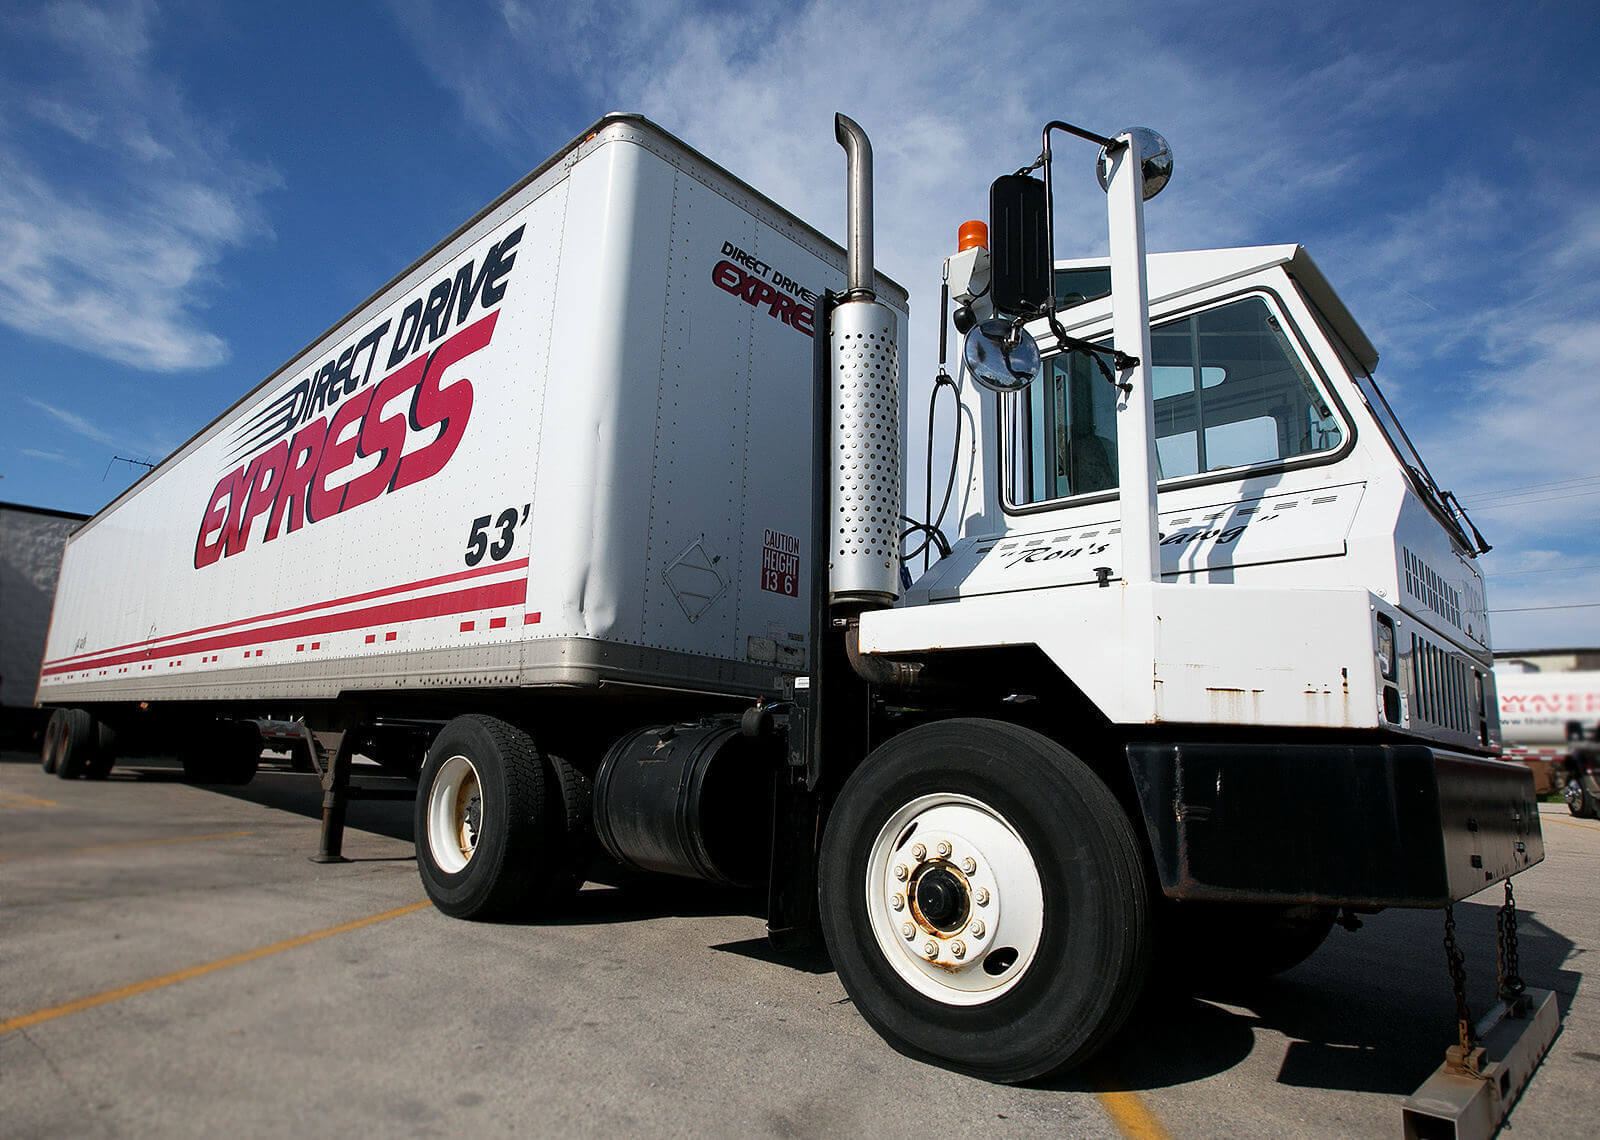 Semi truck fleet marketing photography services for Direct Drive Logistics